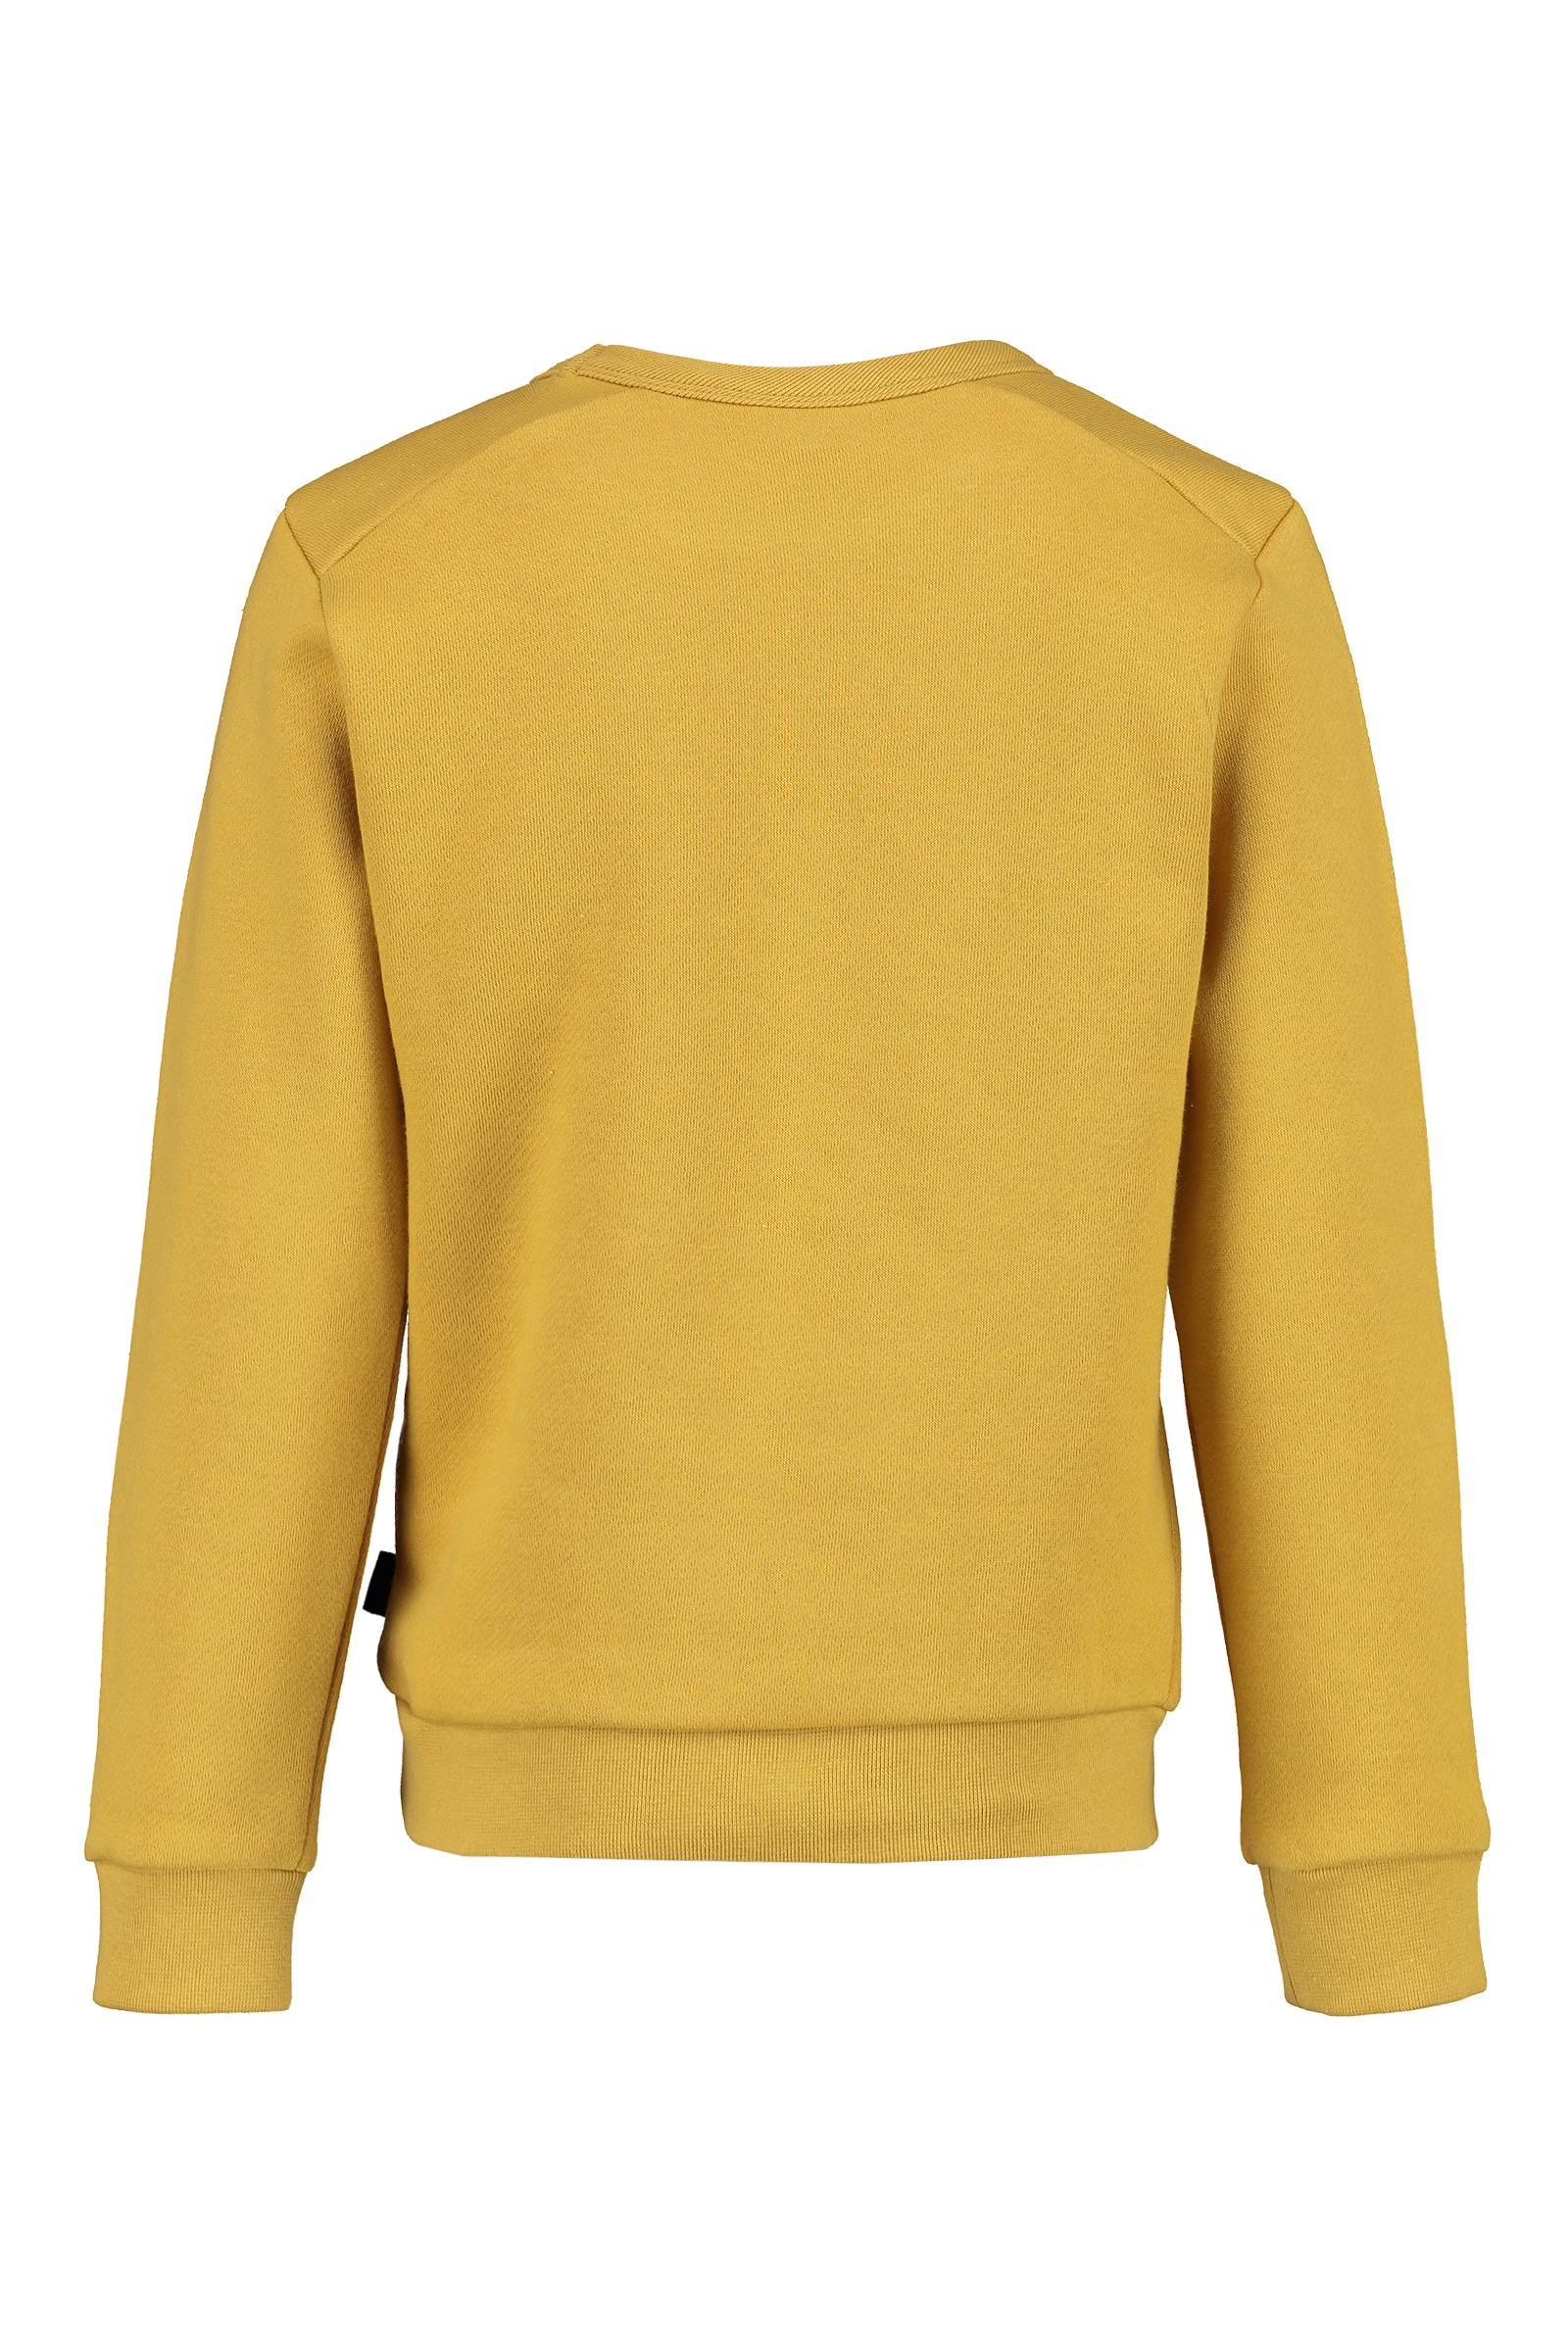 CKSKIDS_0_BERNOEN_YELLOW_0_back.jpg